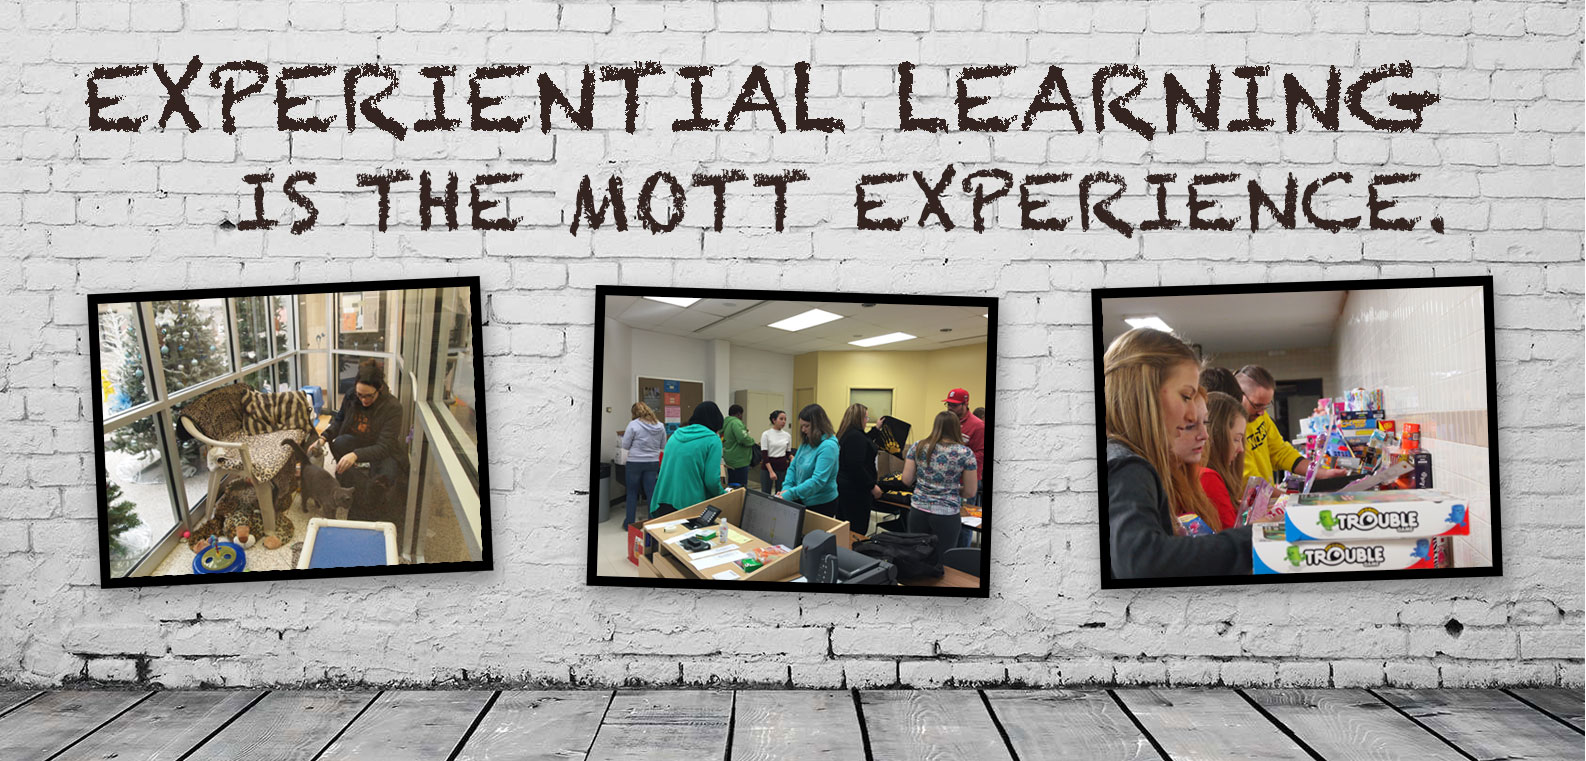 ad for experiential learning